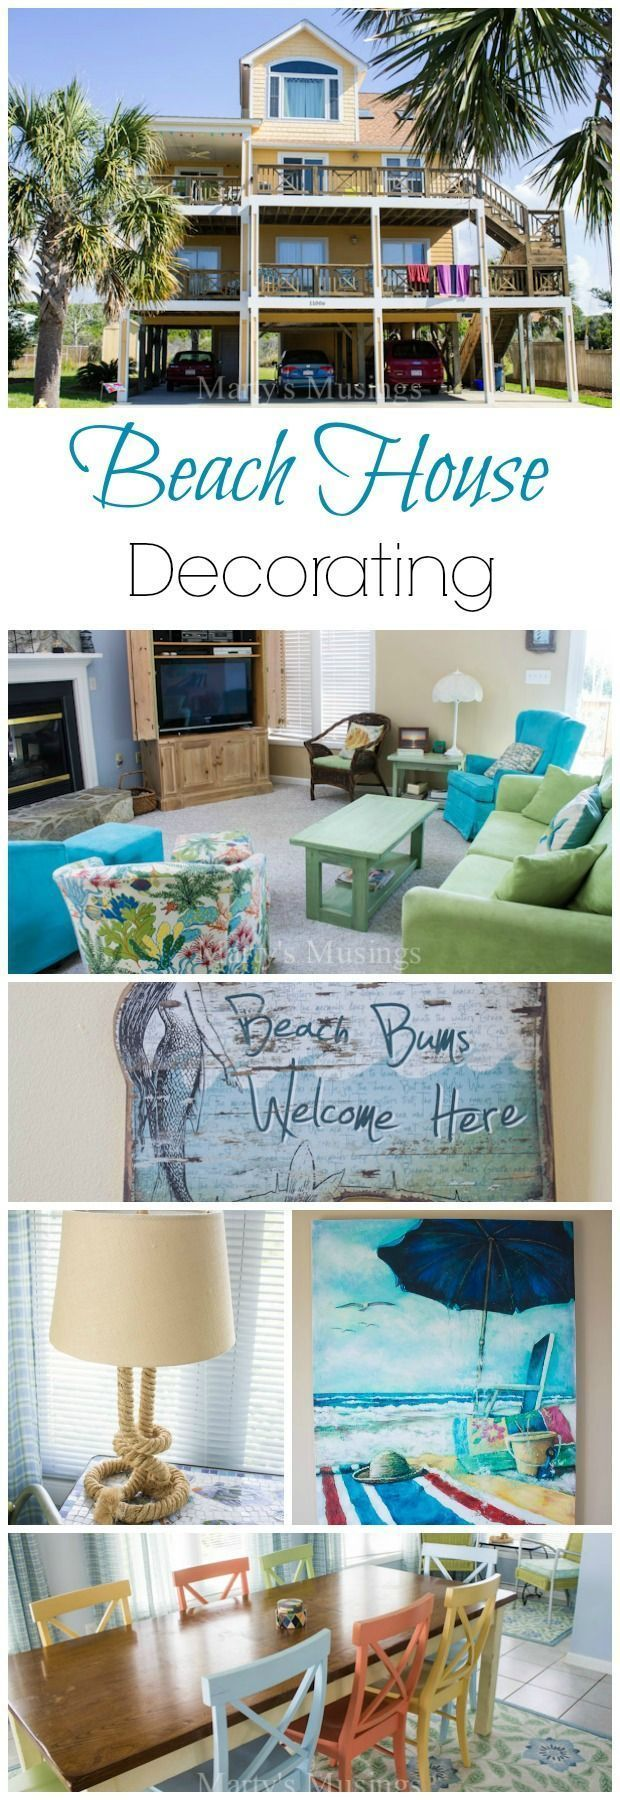 Full Of Detailed Pictures And Decor, This Post Contains So Many Beach House  Decorating Ideas That You Will Be Dreaming Of Your Own Escape One Day!